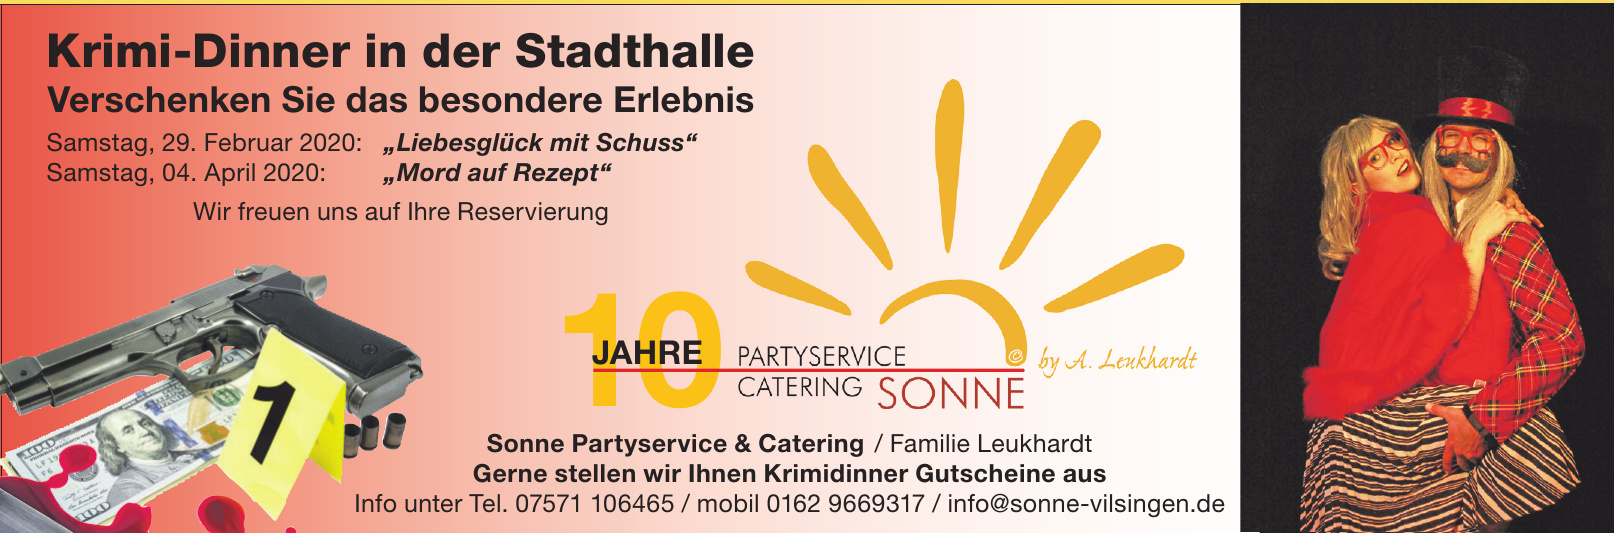 Sonne Partyservice & Catering